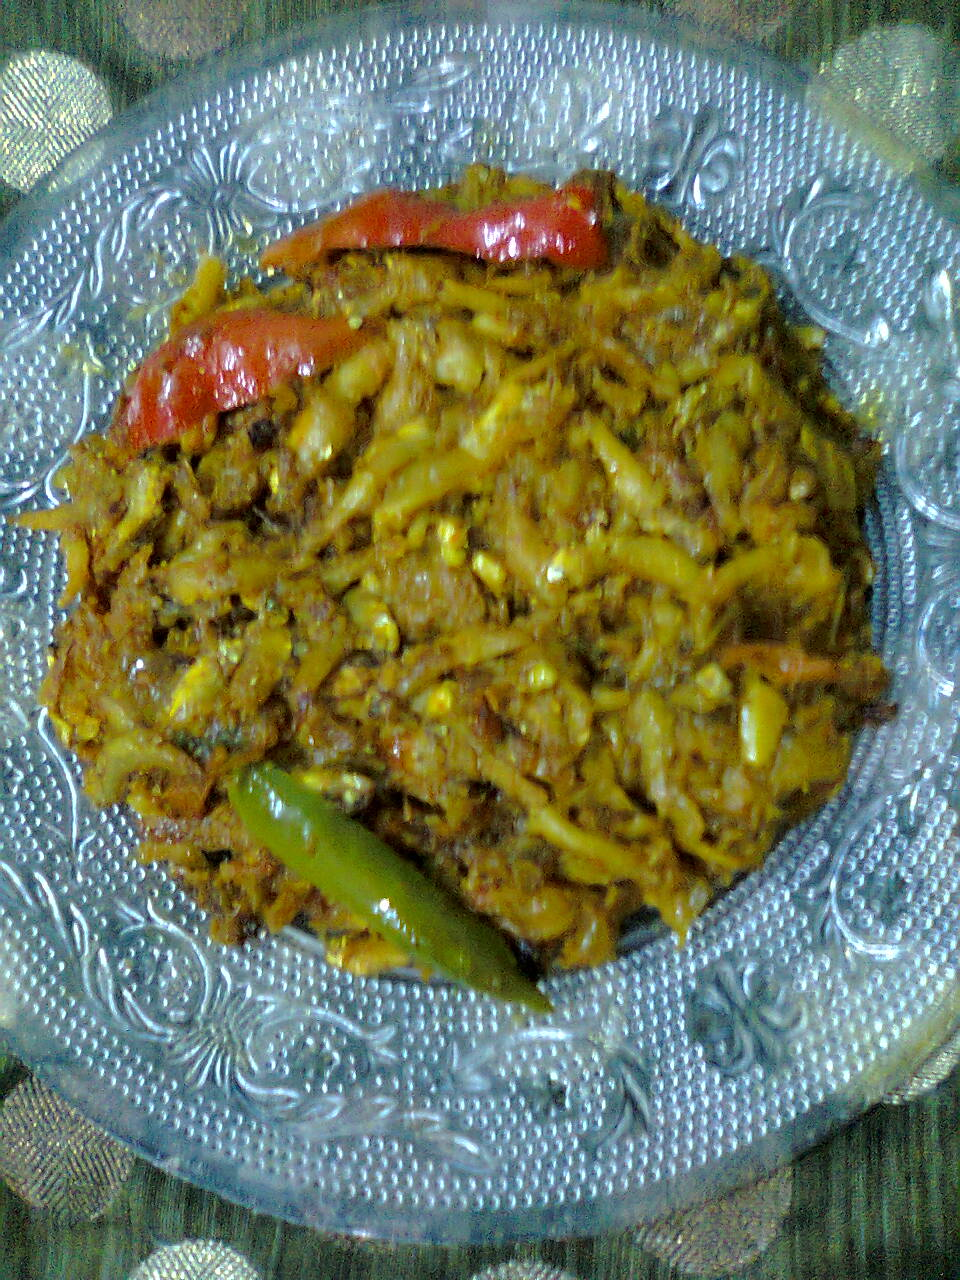 Dry Dish Of Kachki Fish / Kachki Macher Paturi